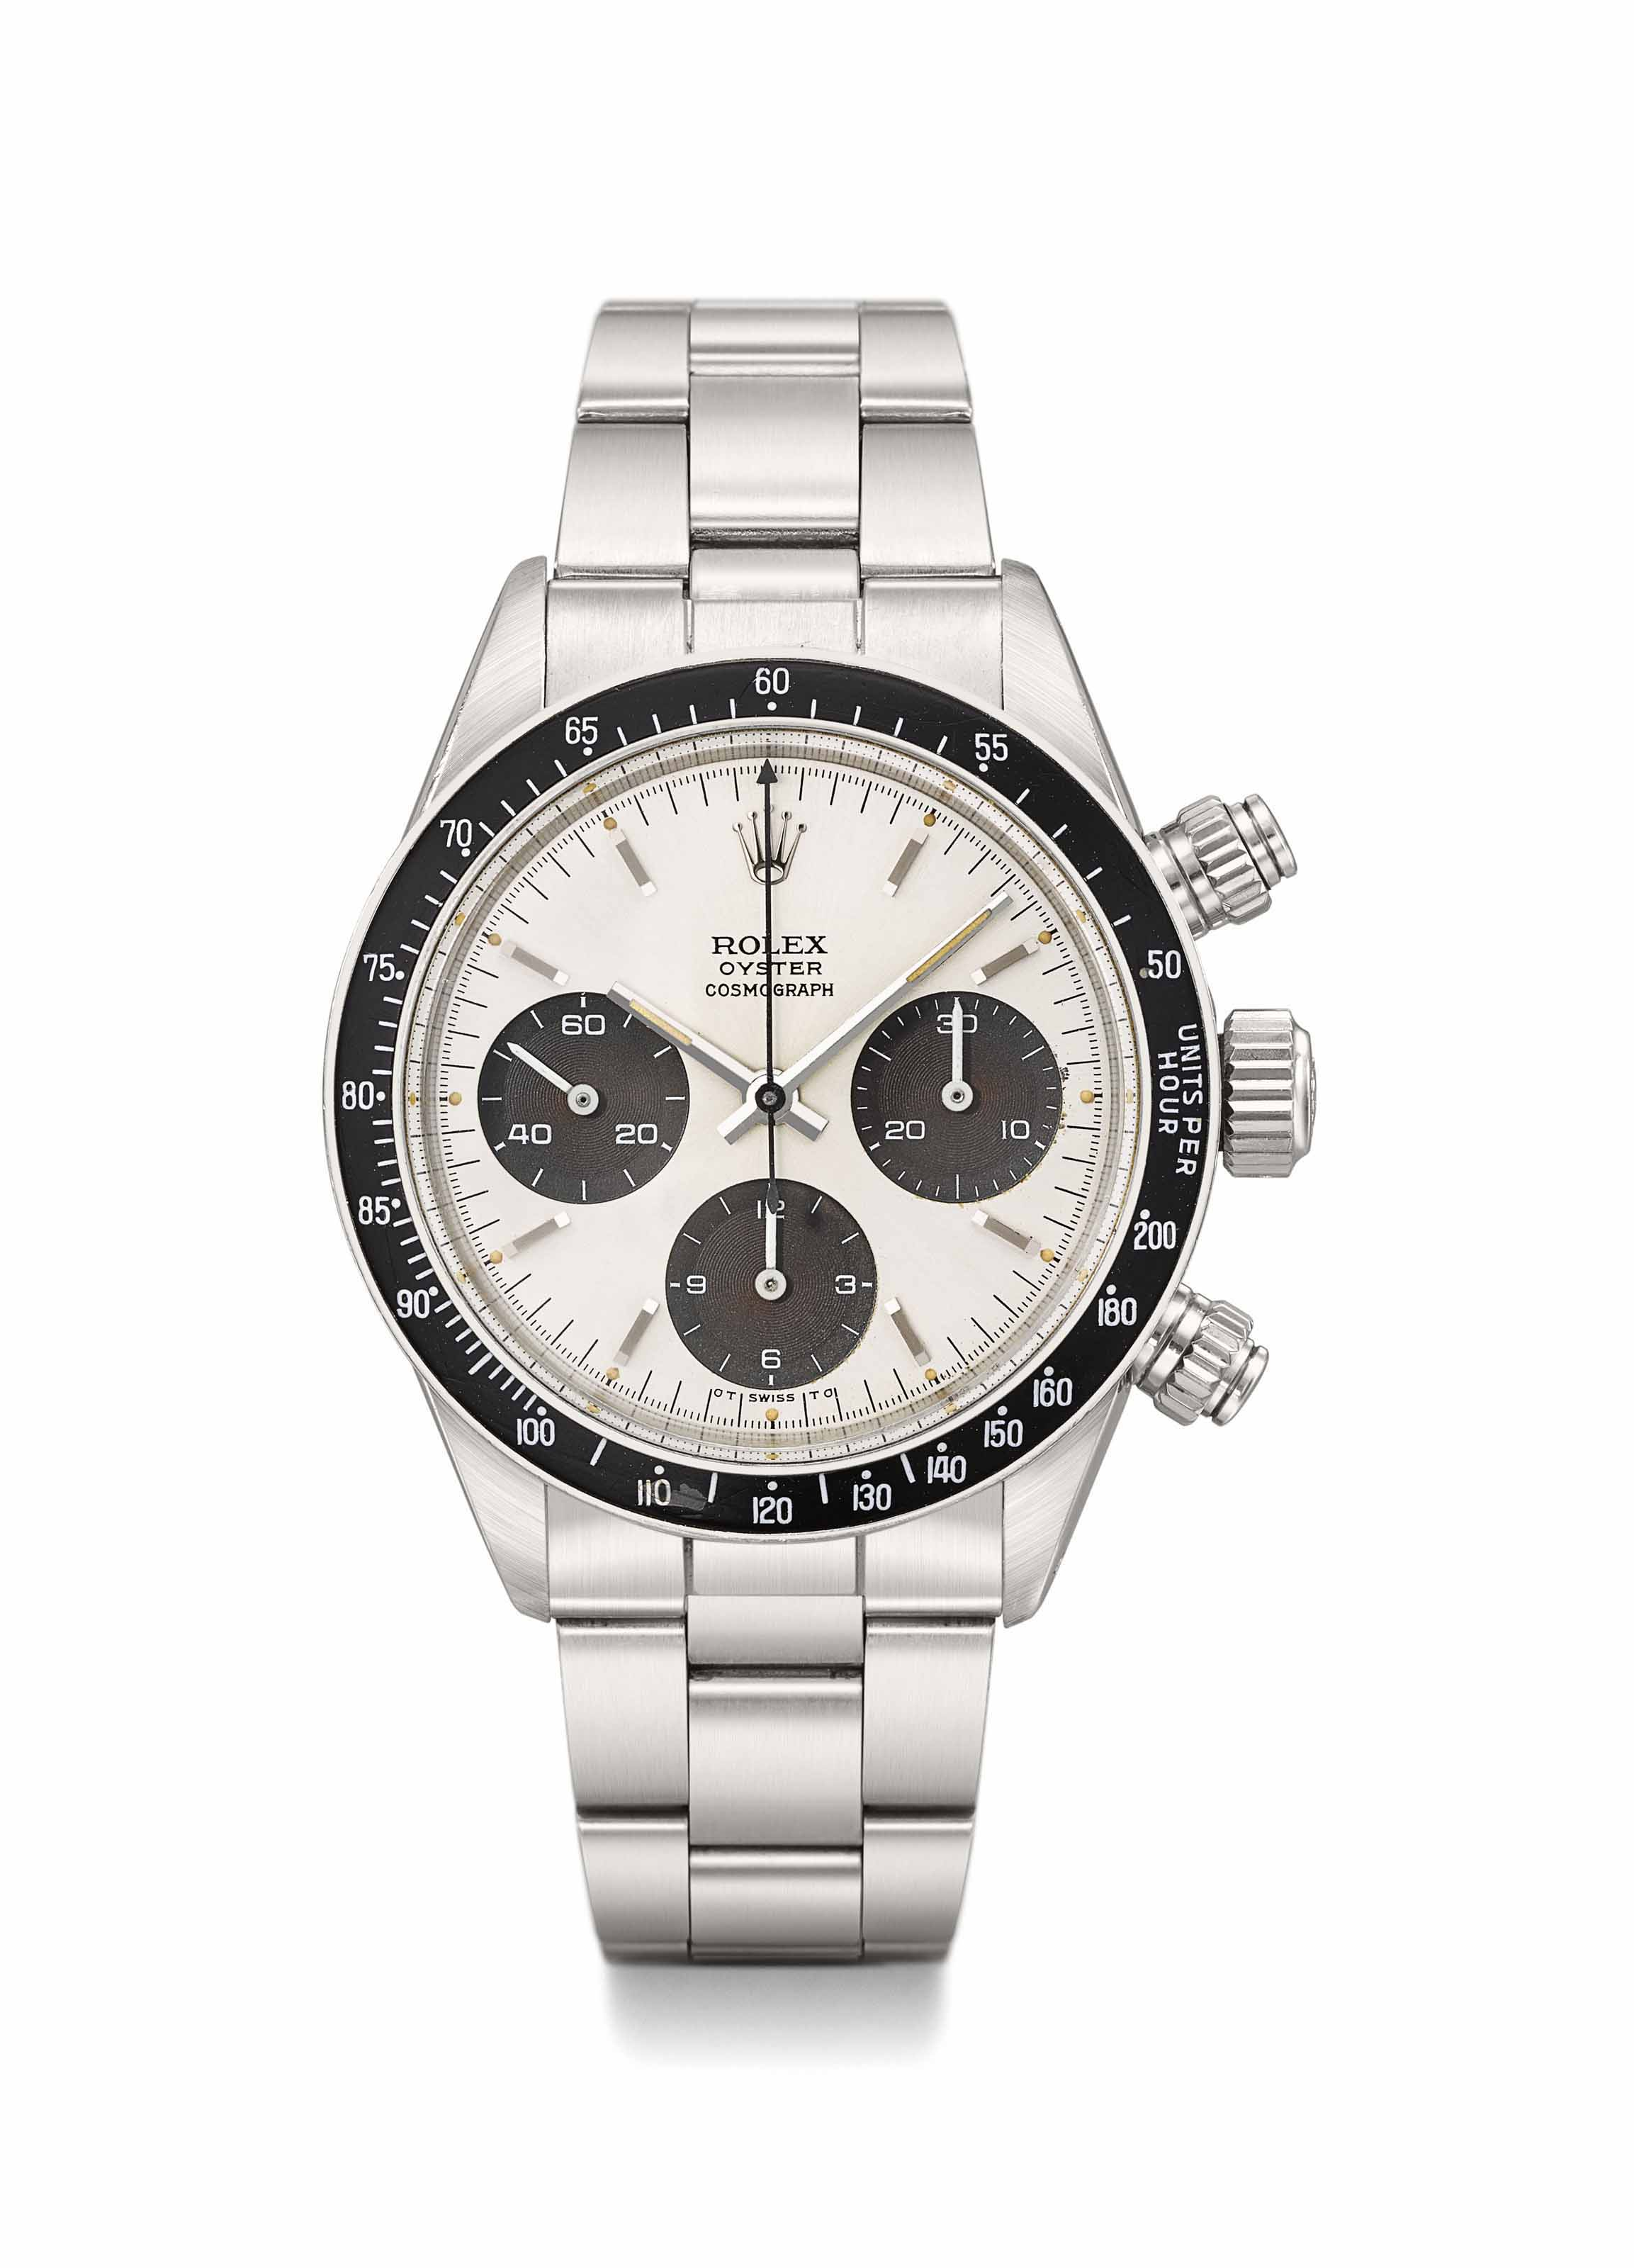 Steel Watch The Rolex Daytona 5 Reasons Collectors Love This Watch Christie S